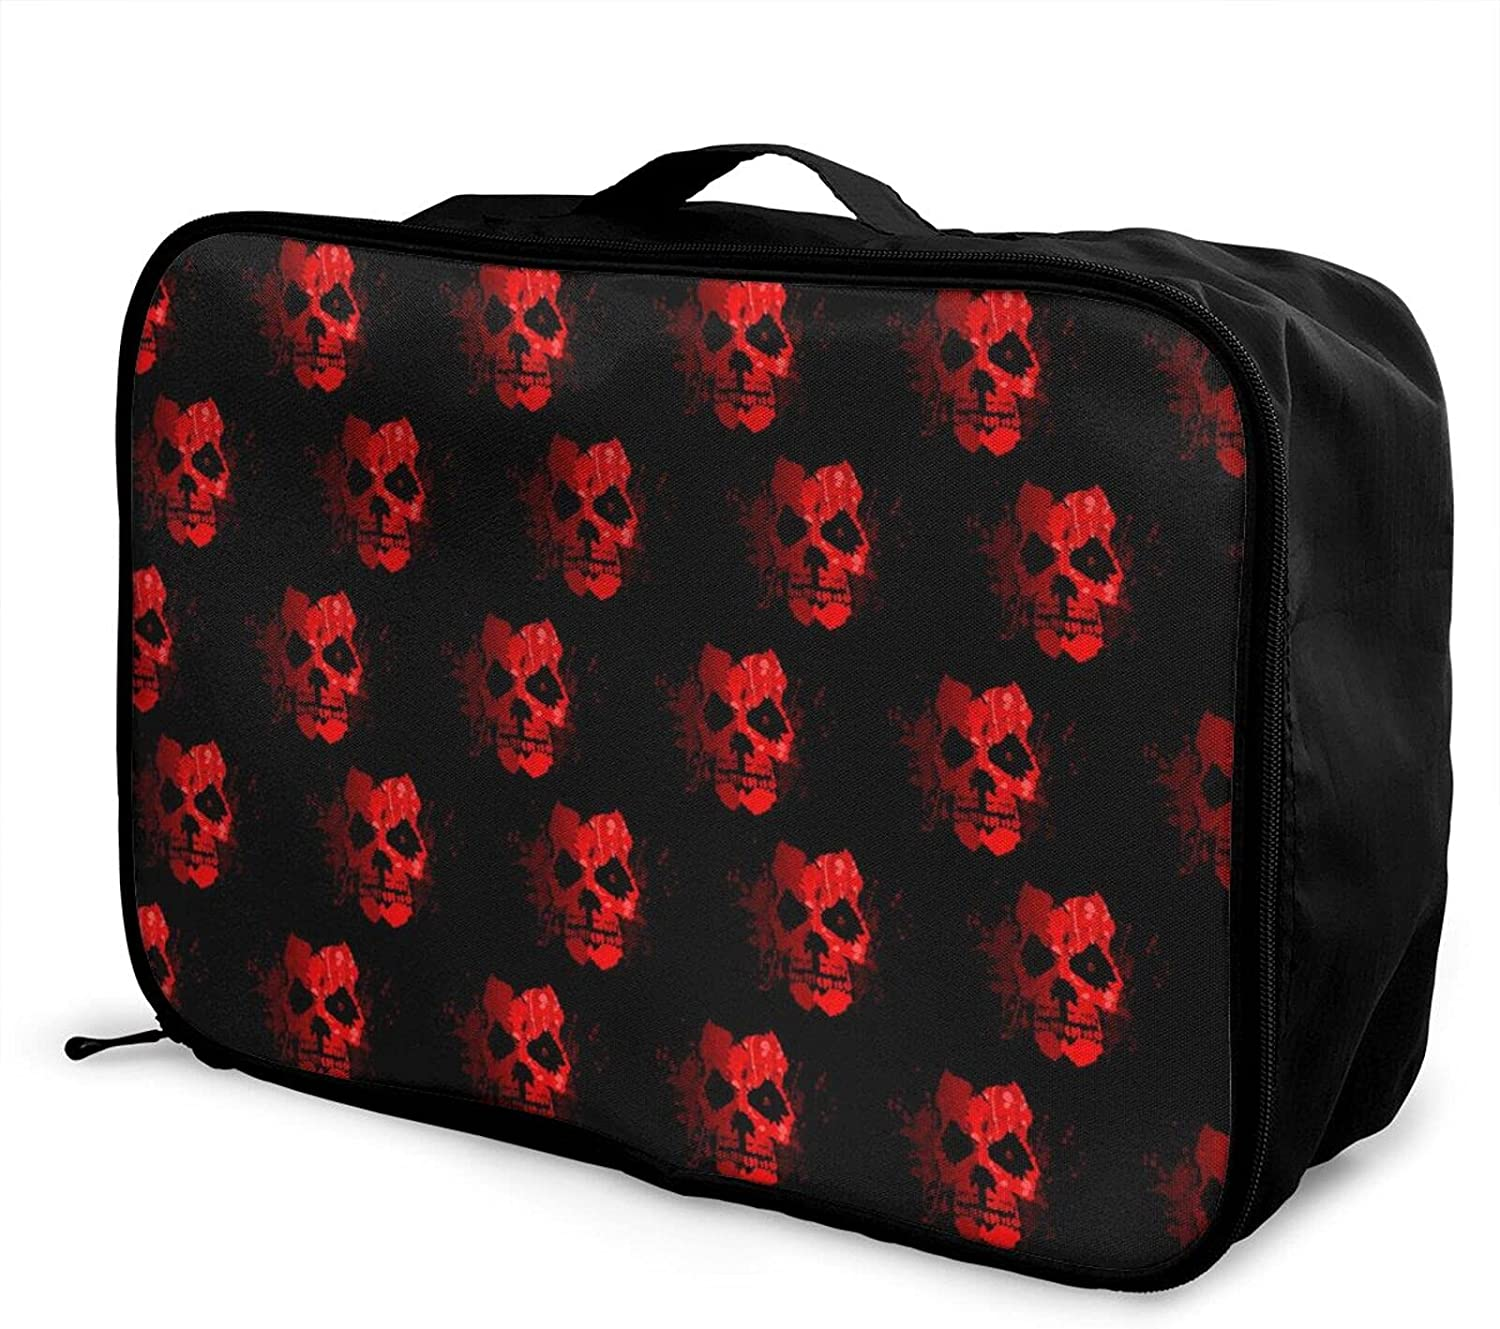 Foldable Travel New arrival Free Shipping New Bag Tote Red Carry-On Halloween Fire Skull